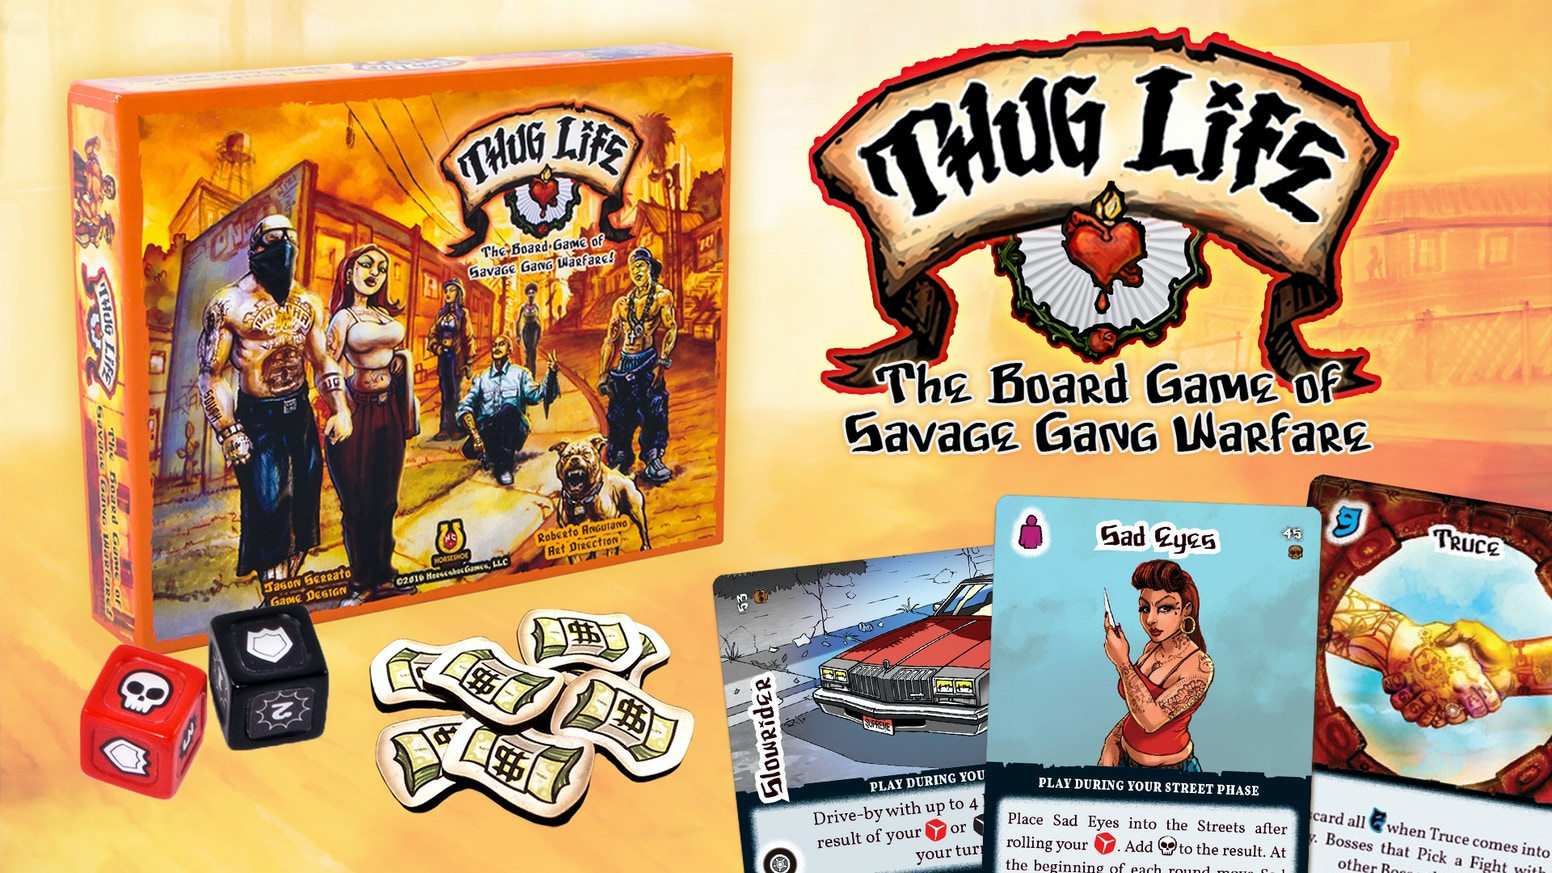 Thug life is a fast paced, urban action game where players take on the role of Bosses battling for respect in the Streets!